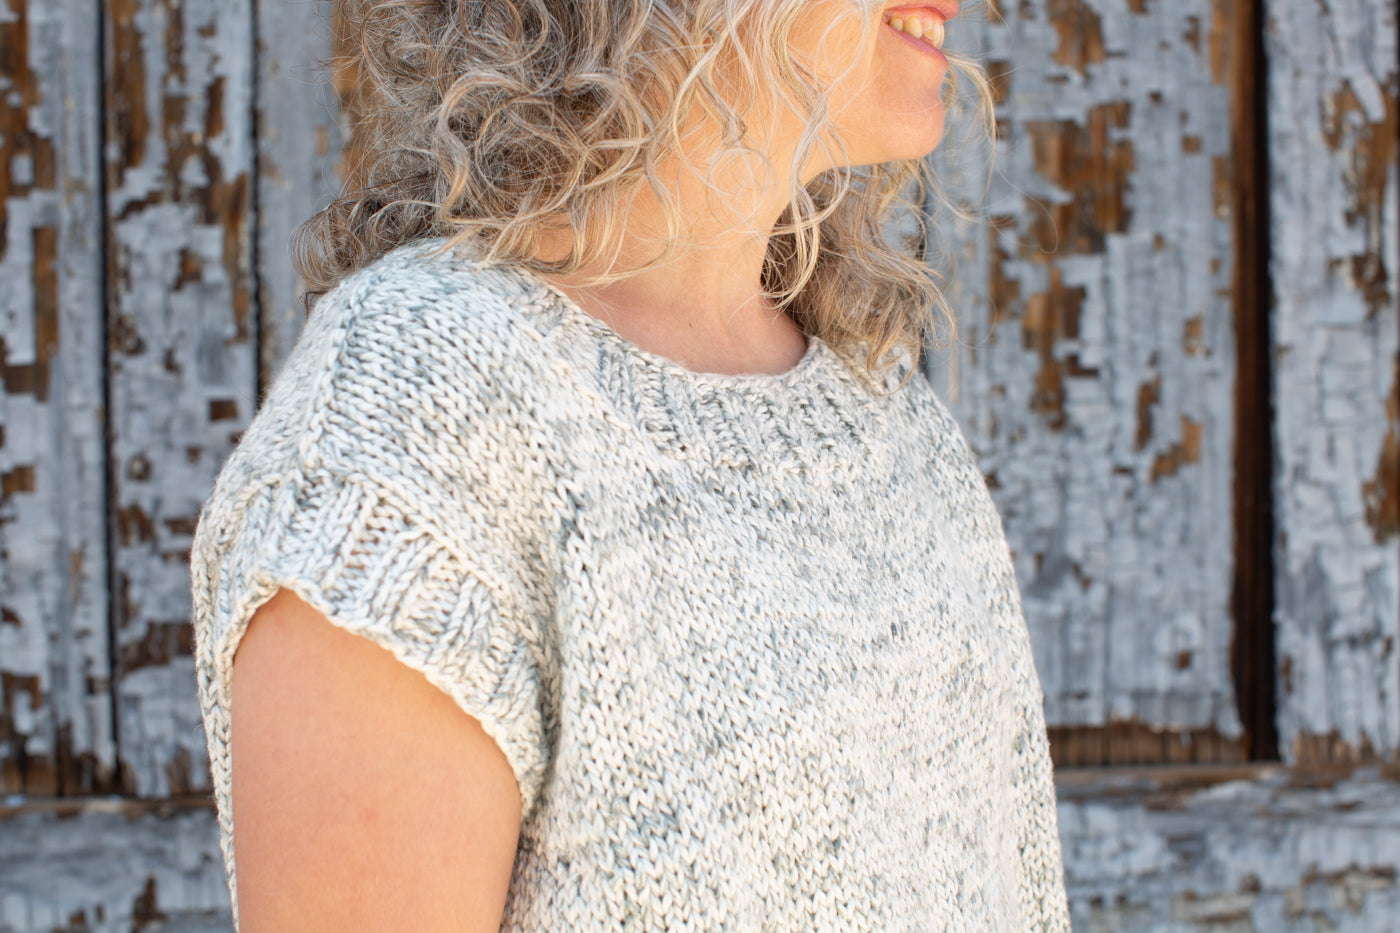 Detail photograph of a women wearing a knitted sweater, standing in front of a wooden wall with grey peeling paint.  The photograph highlights the ribbing on the knitting on the neckline and arm holes.